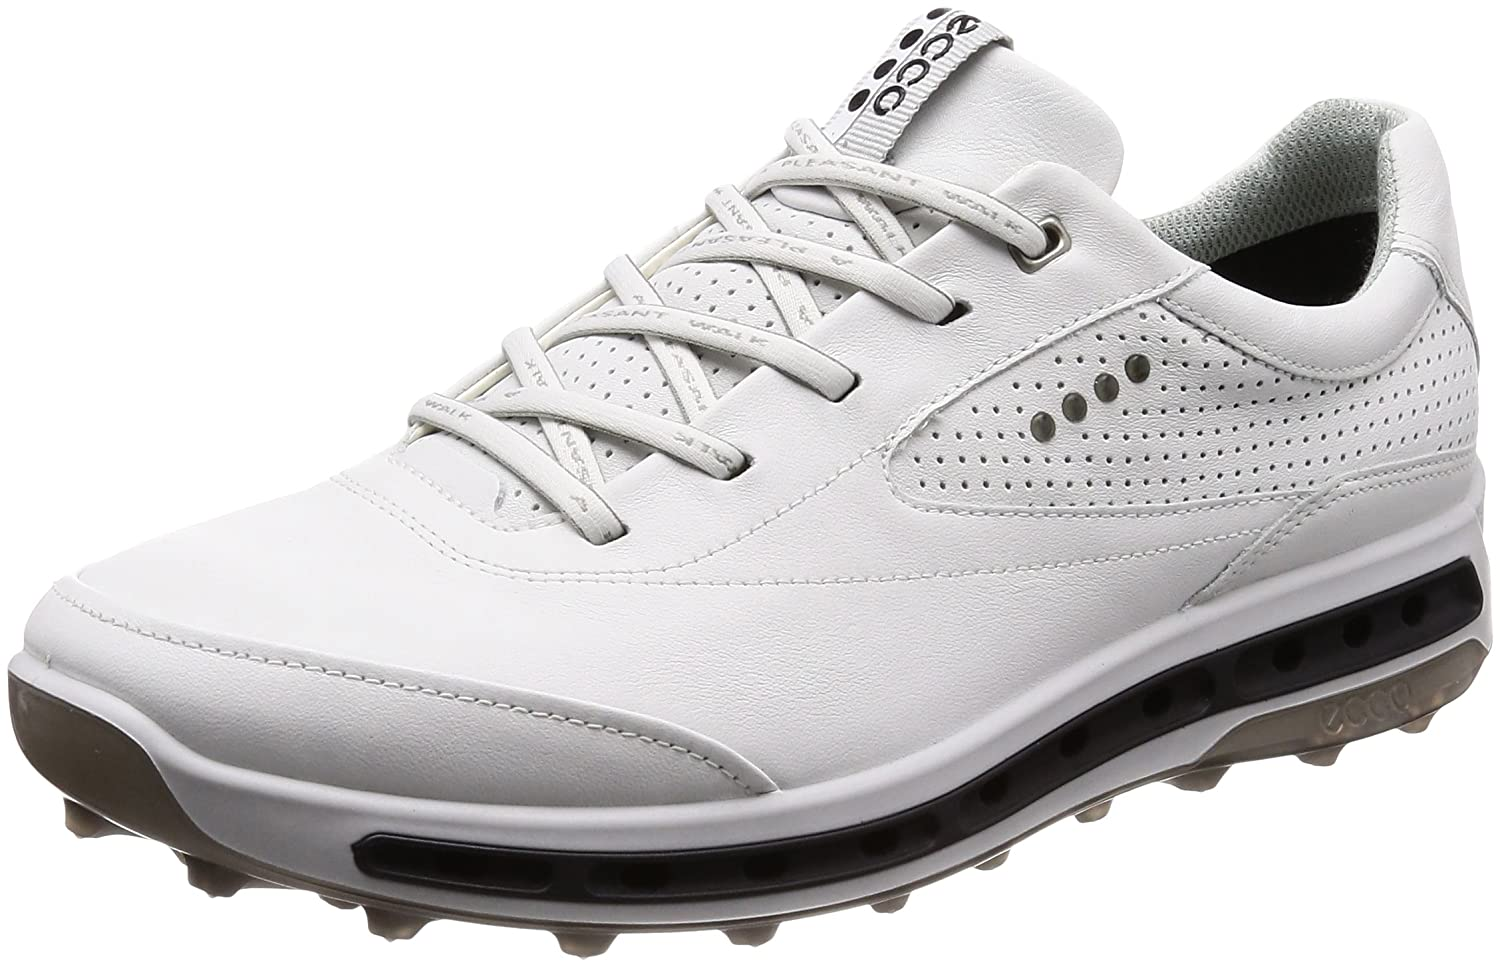 [エコー] ゴルフシューズ ECCO GOLF COOL PRO B0791VDMX3 24.5 cm WHITE/BLACK/TRANS